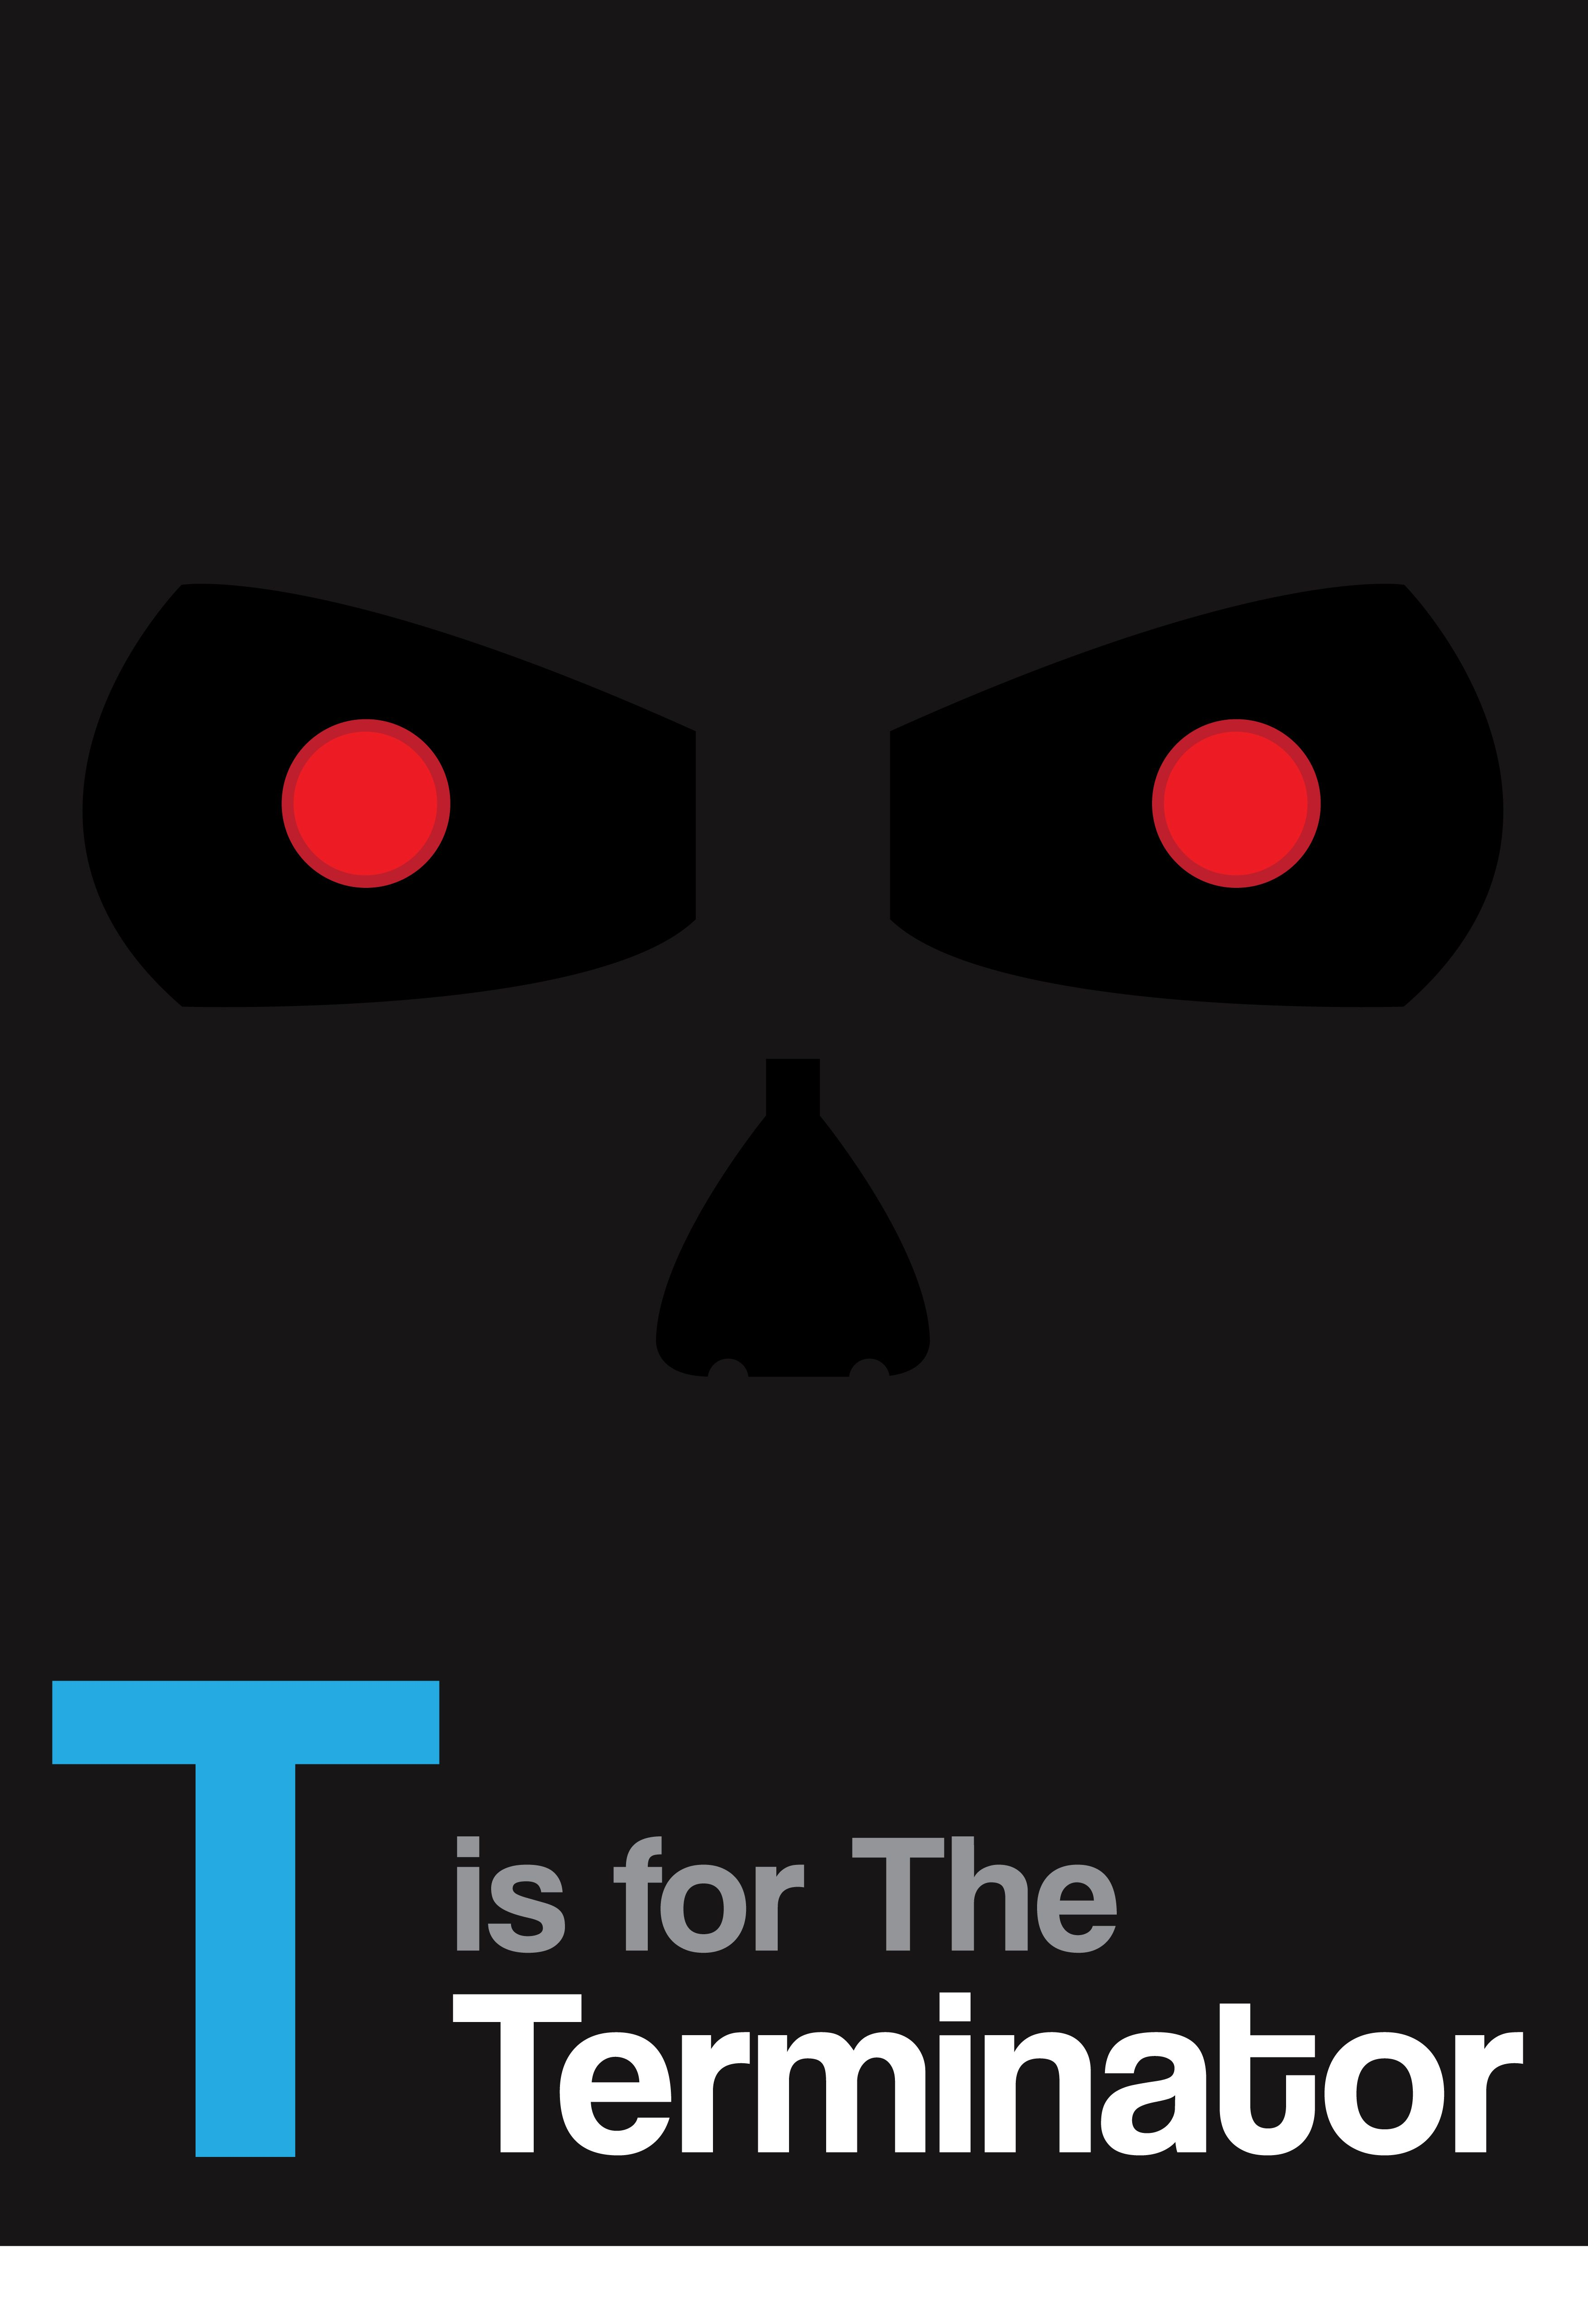 T is for The Terminator - could only be really!